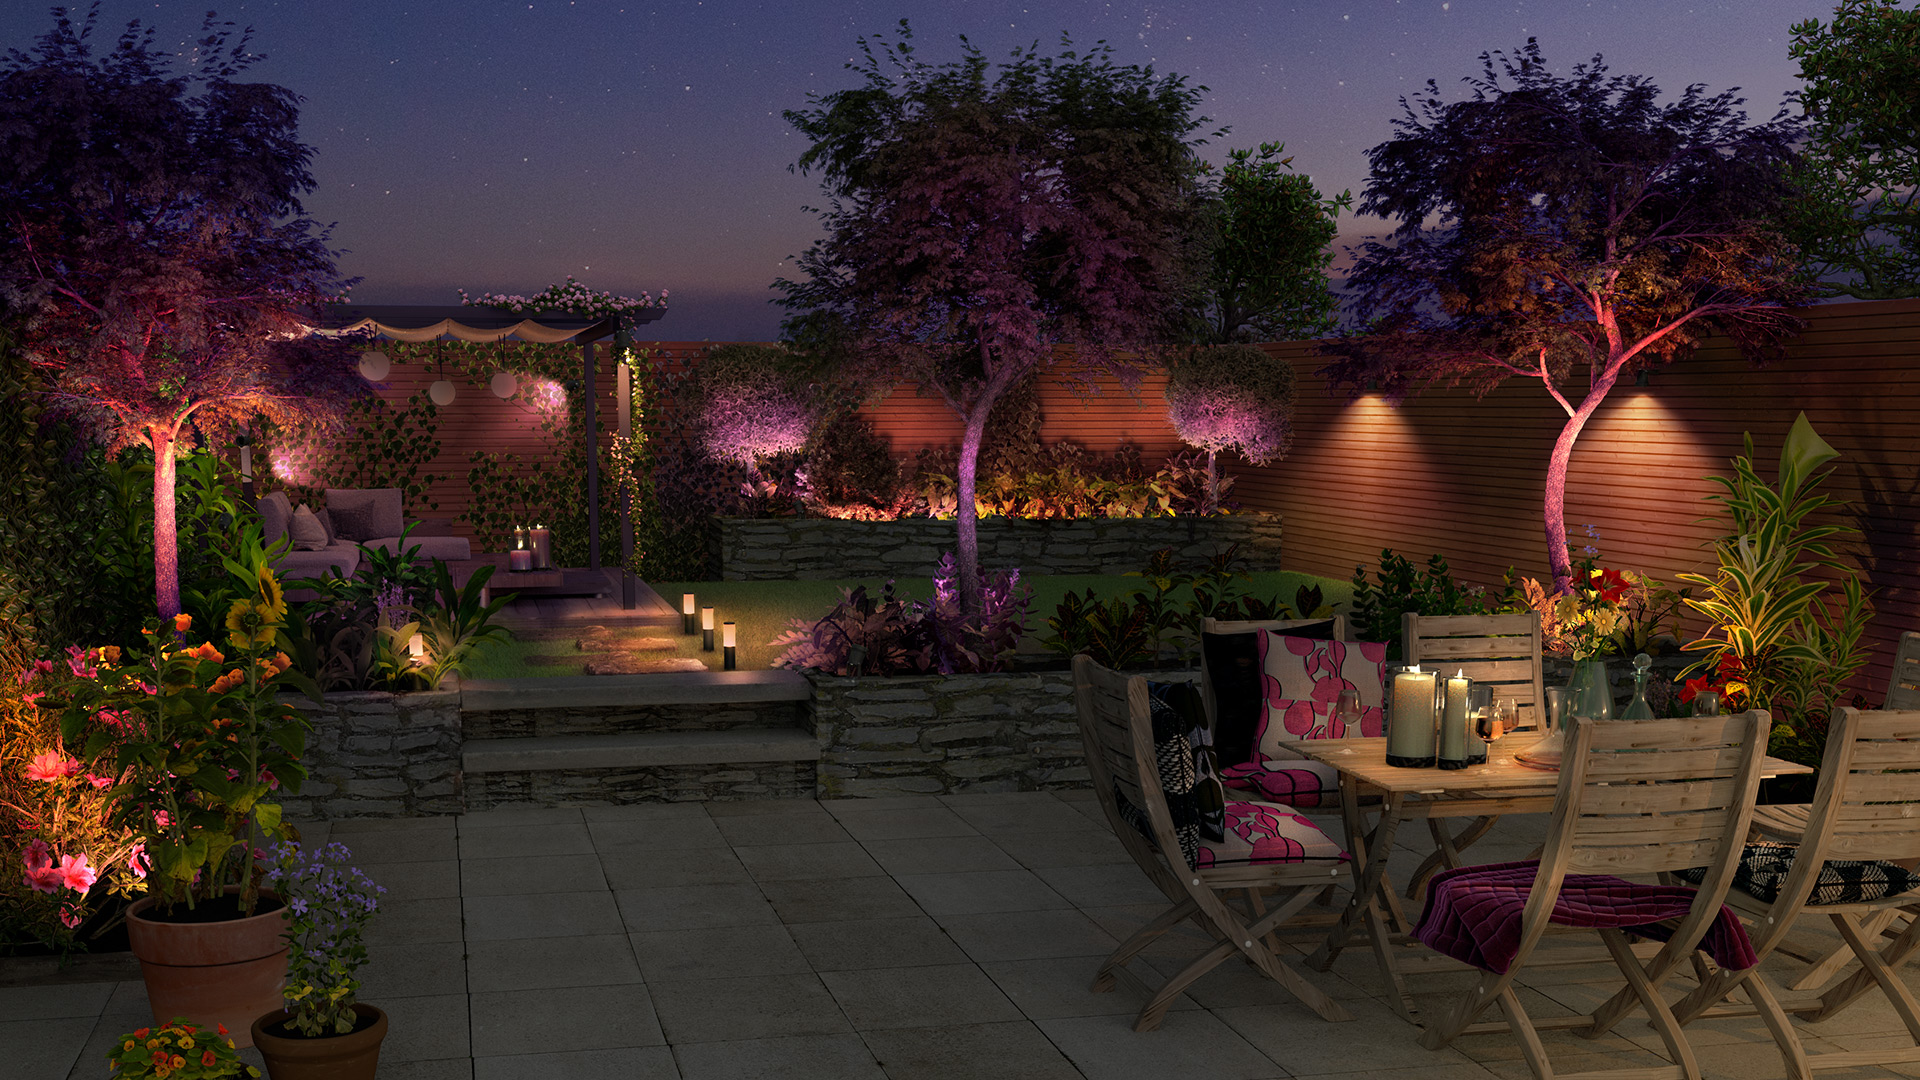 Outdoor smart lighting garden party setting